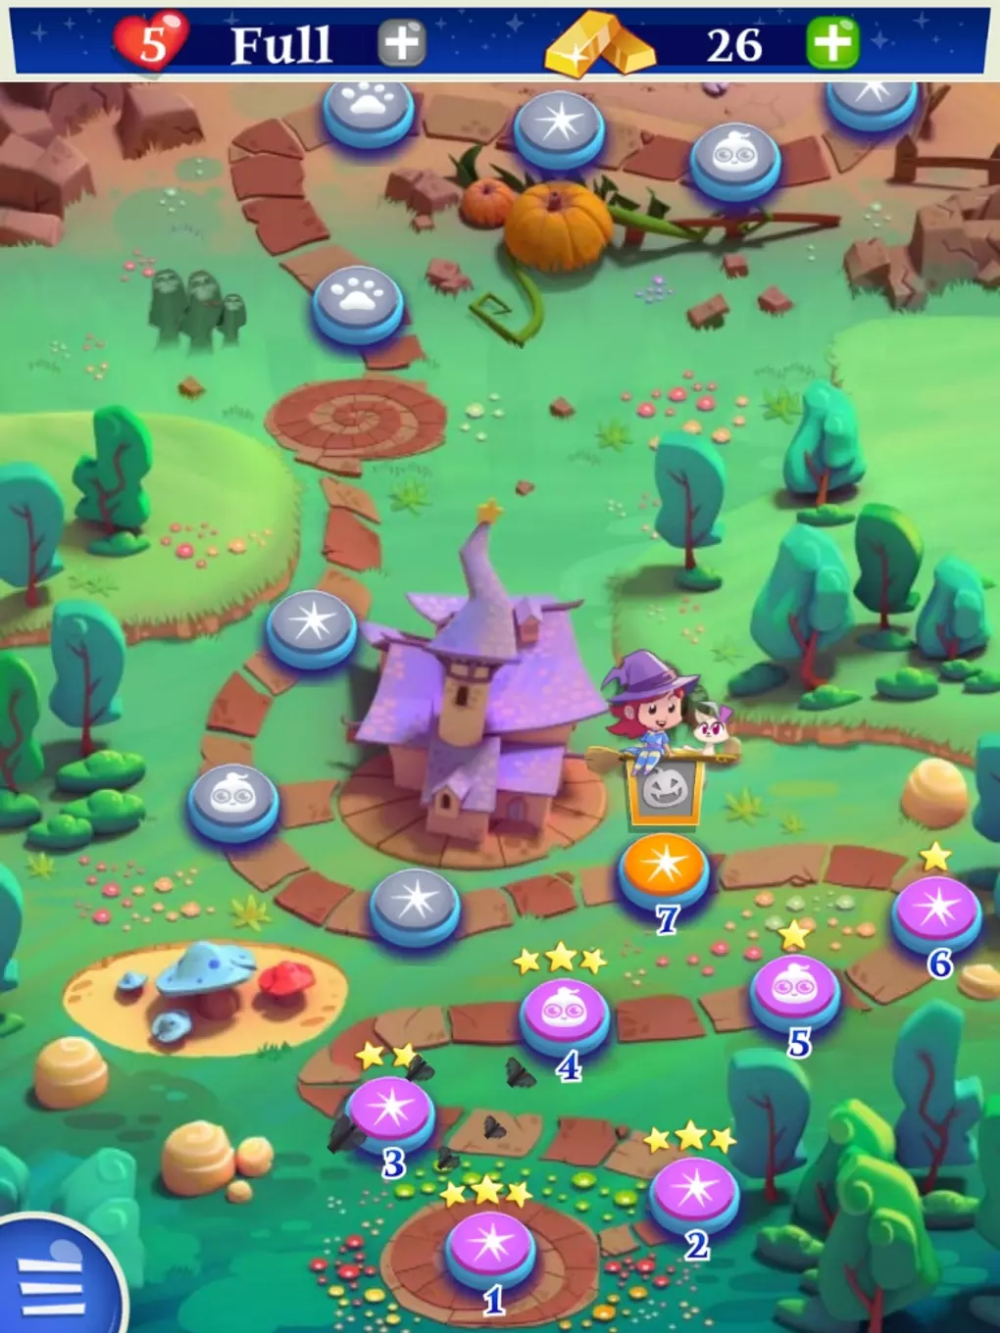 Bubble Witch Saga 2 in 2020 Bubbles, Witch, Saga